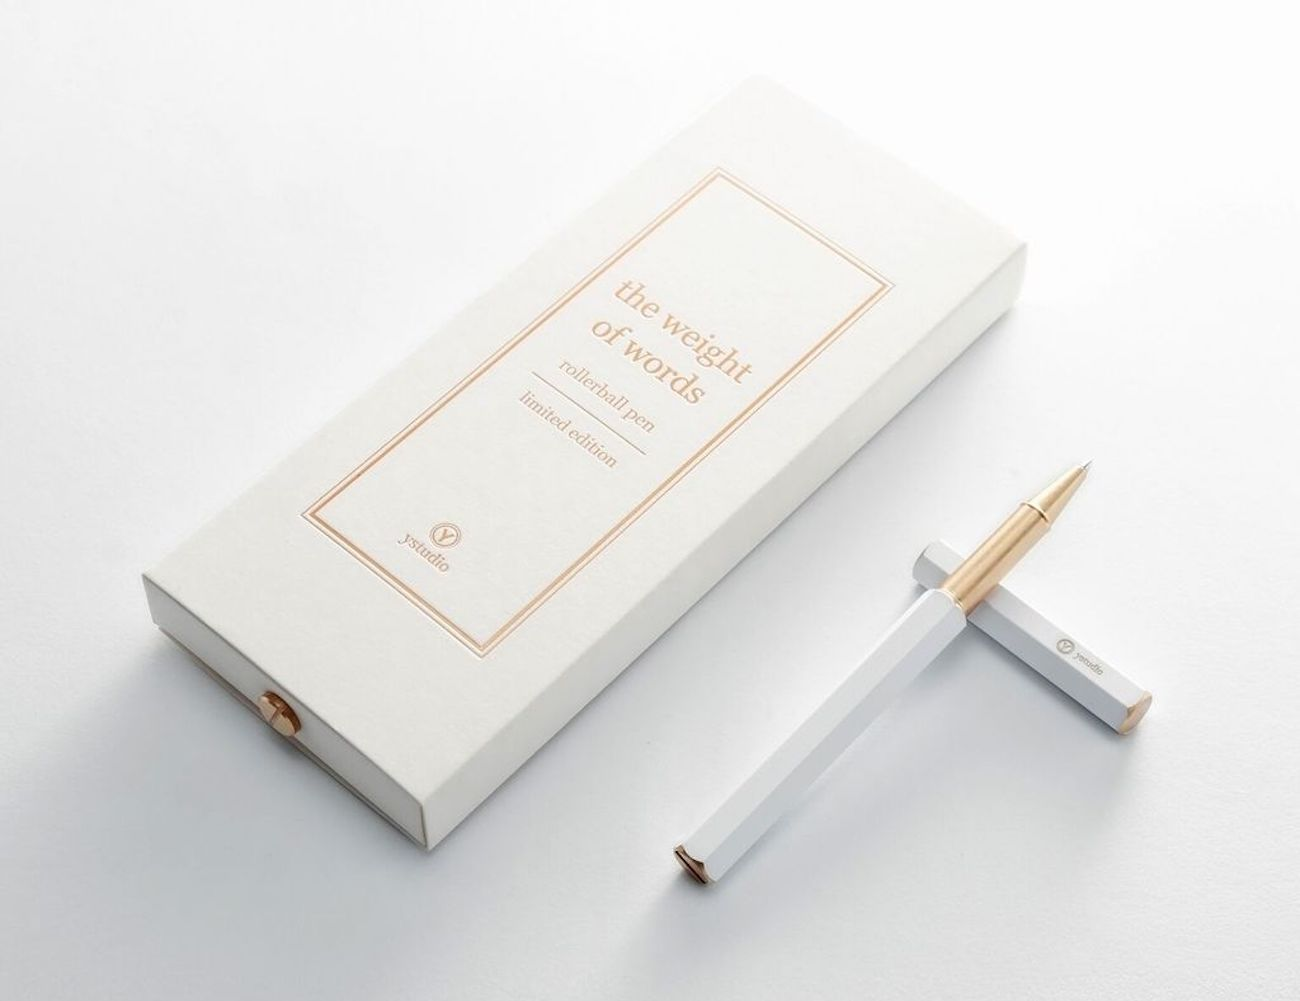 Ystudio Limited Edition White Rollerball Pen